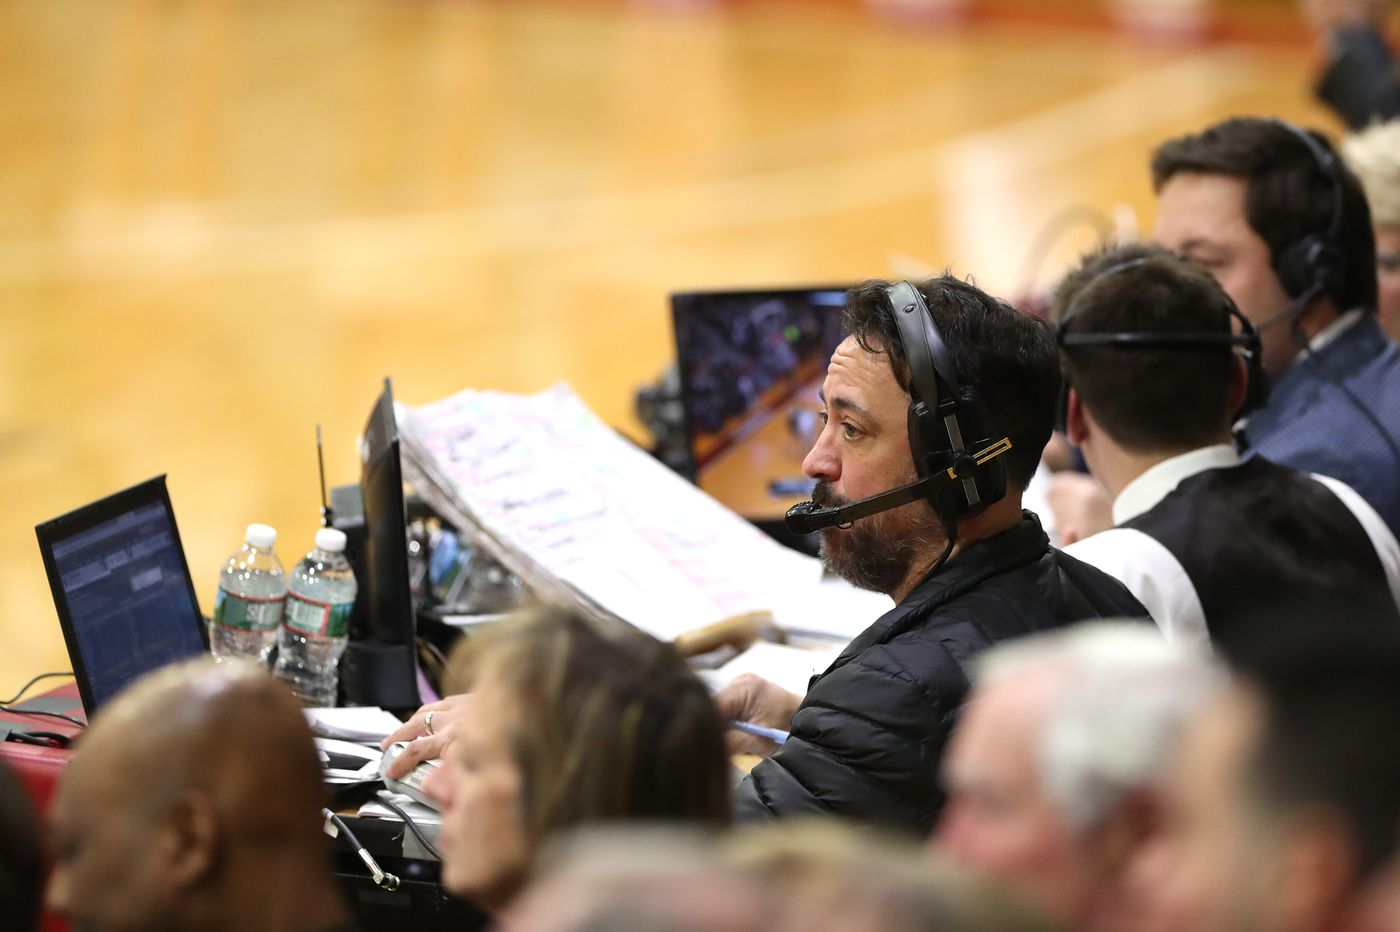 From Villanova to being Joe Buck's stat guy, Ed Sfida makes a living by finding the telling detail